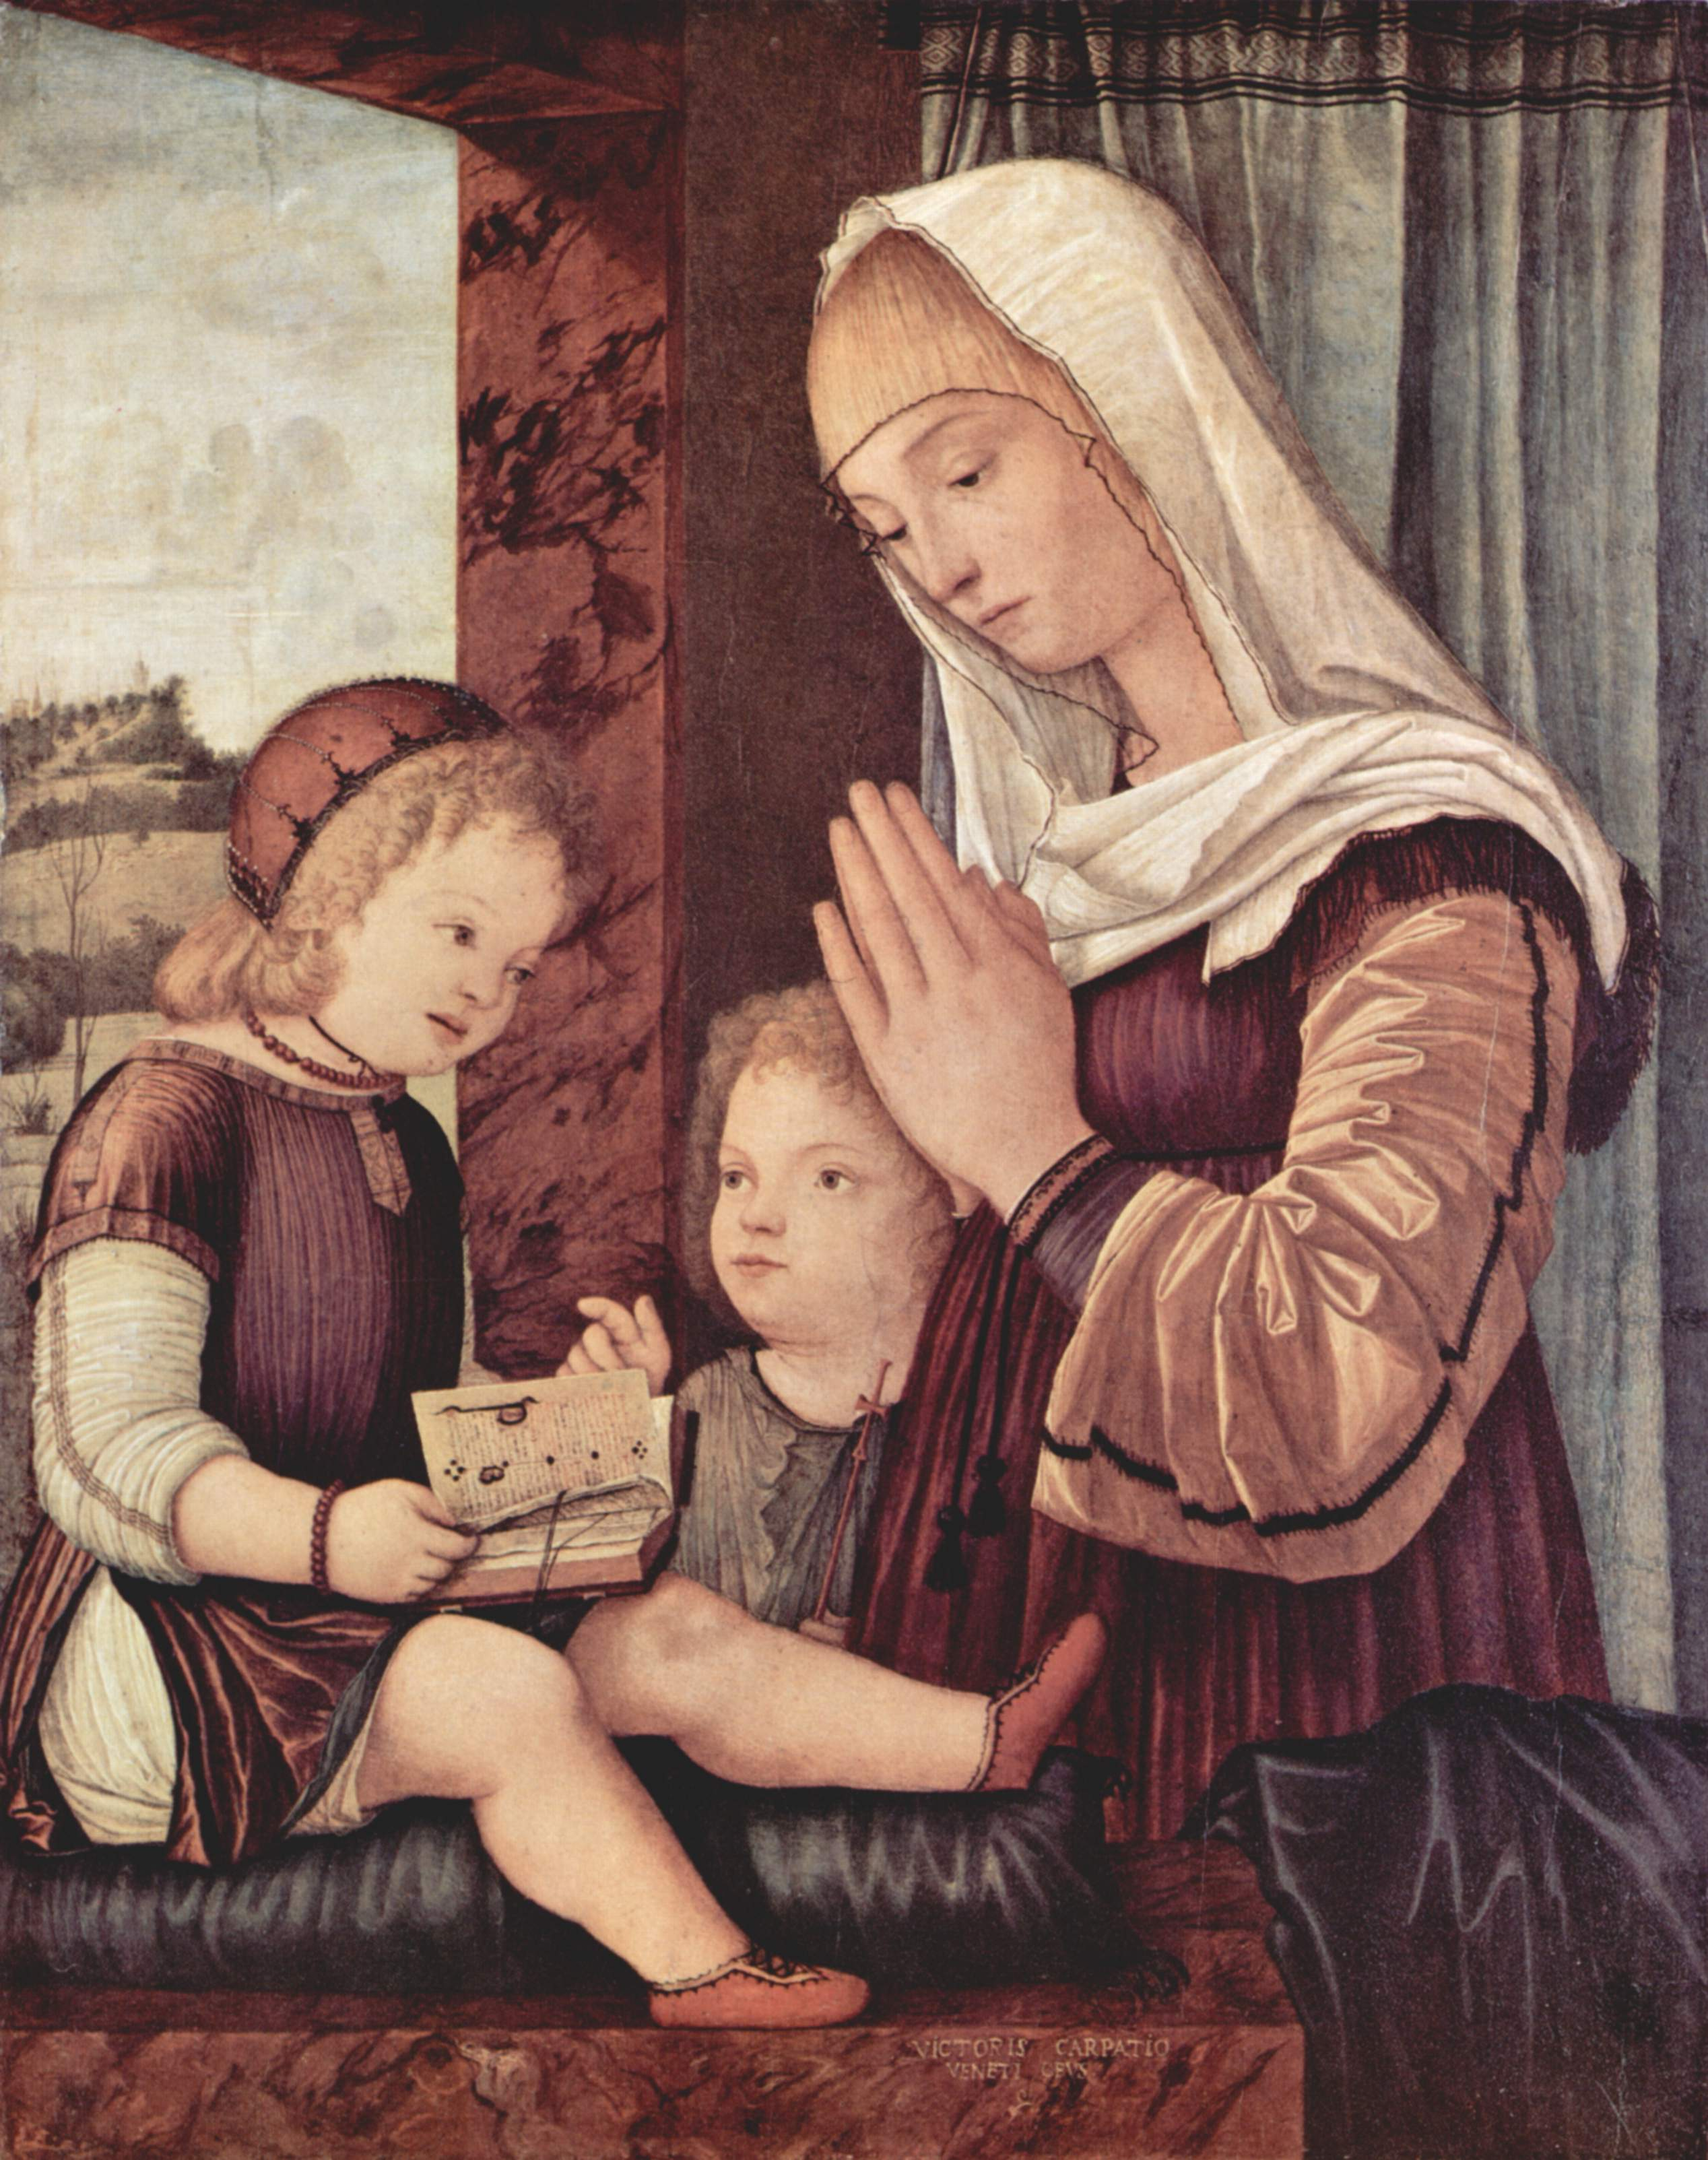 http://upload.wikimedia.org/wikipedia/commons/5/50/Vittore_Carpaccio_067.jpg